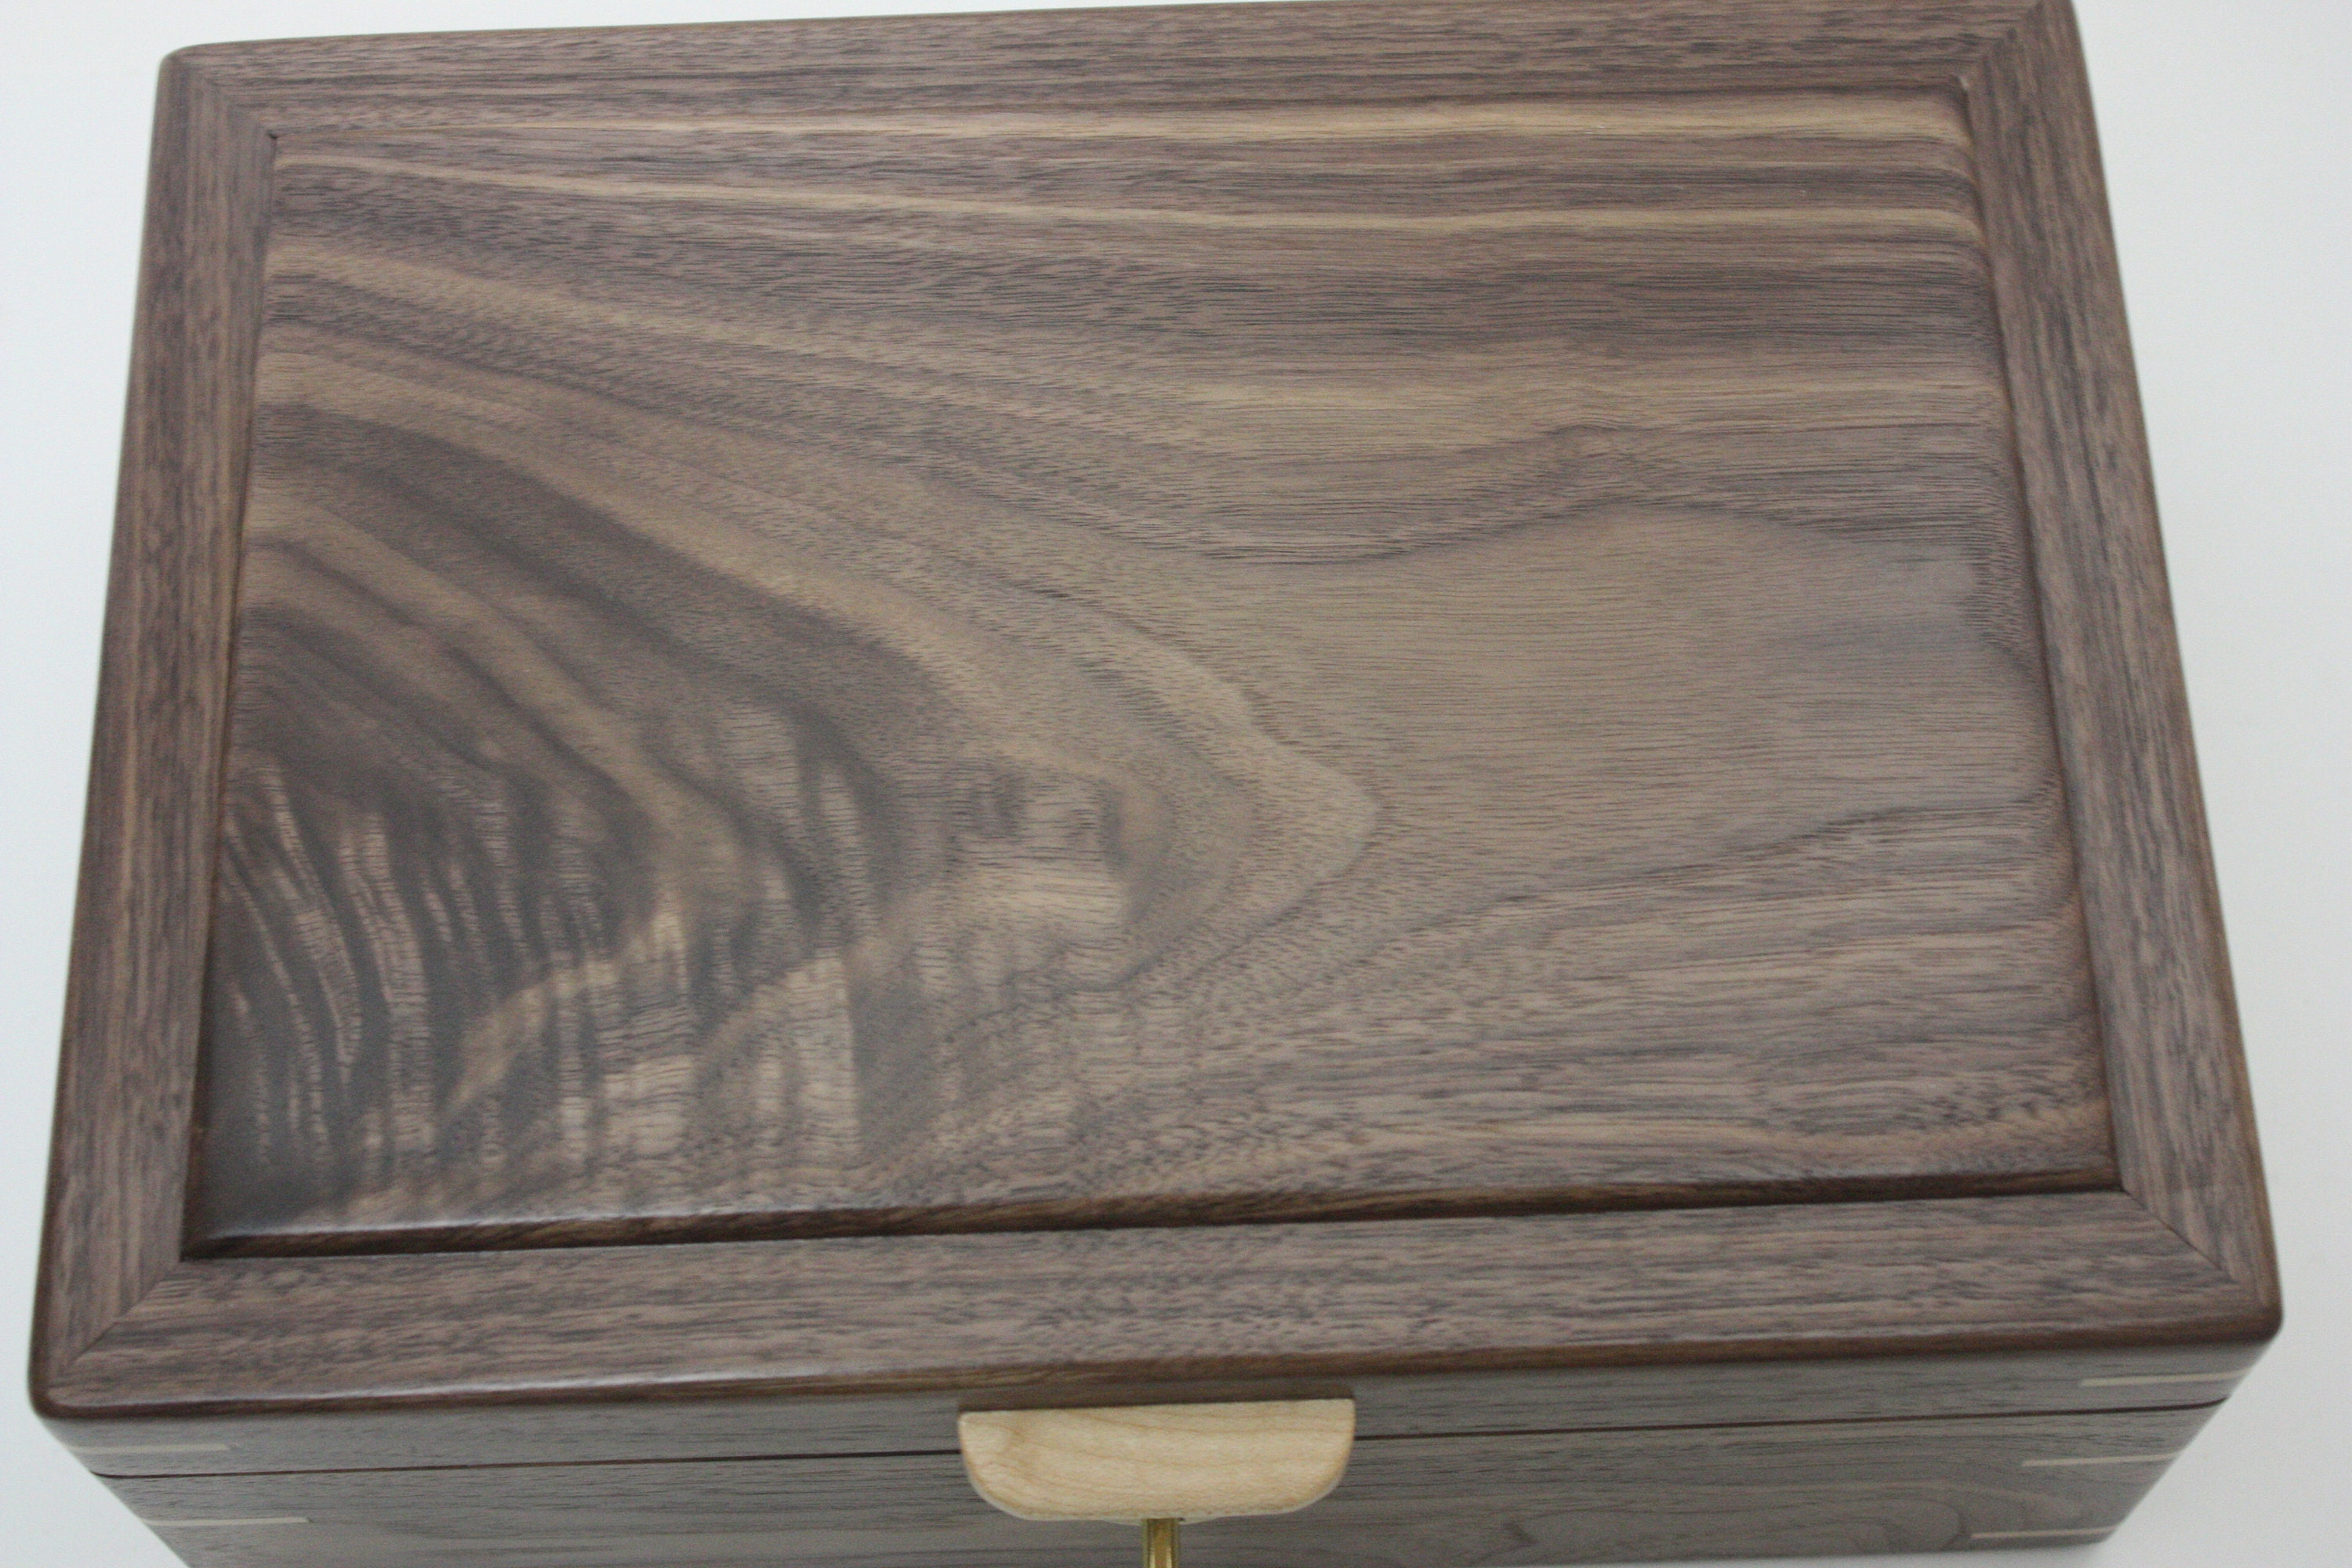 Wild Grain Black Walnut Wood Box